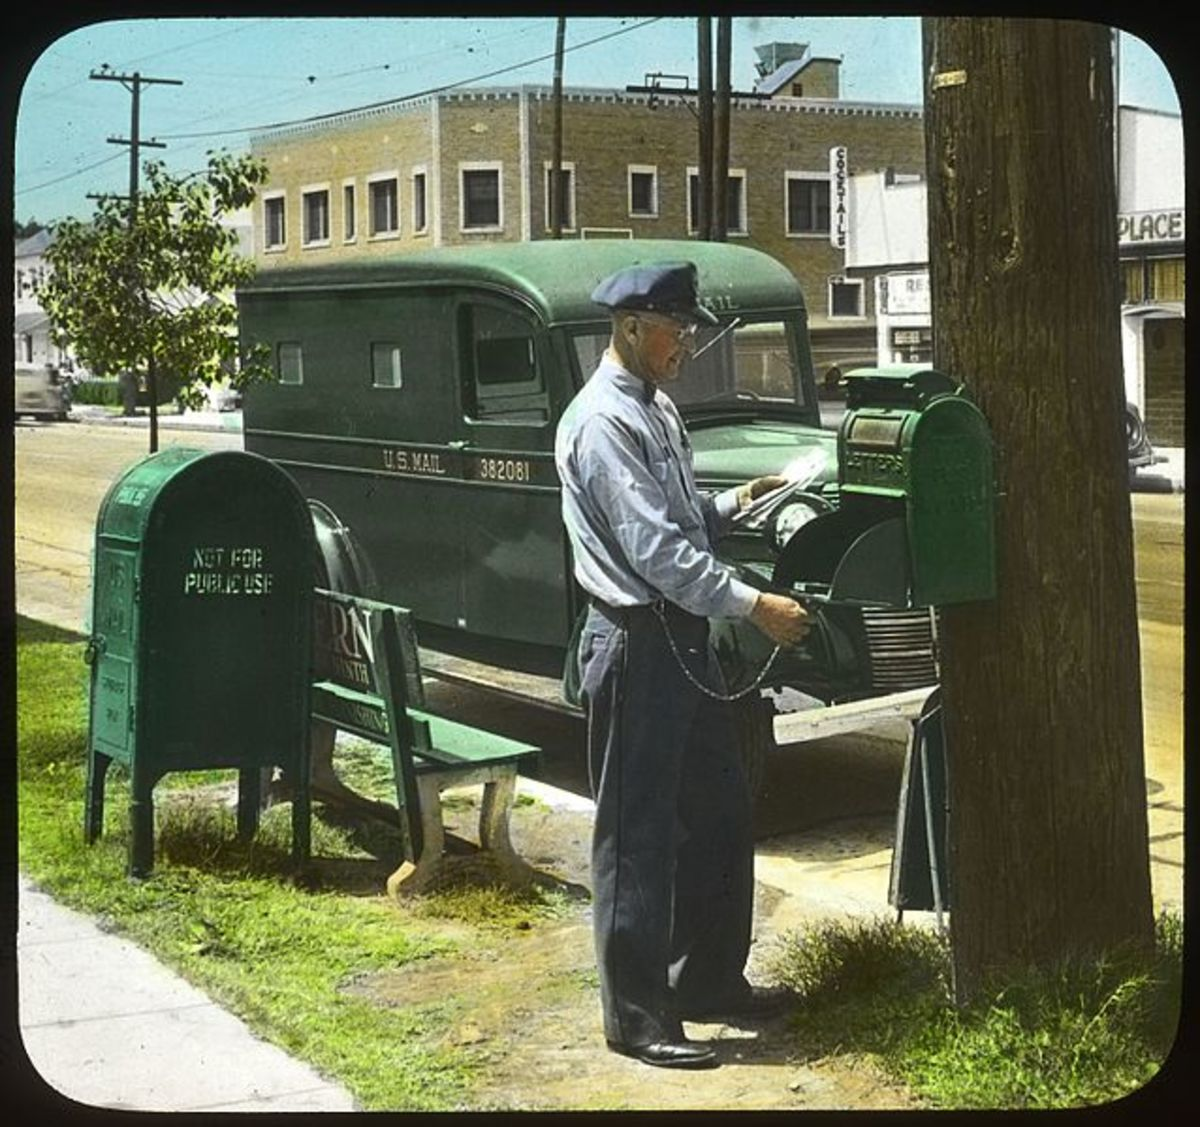 Cca Senior Citizens - Can Post-Fifties Survive the Post Office?